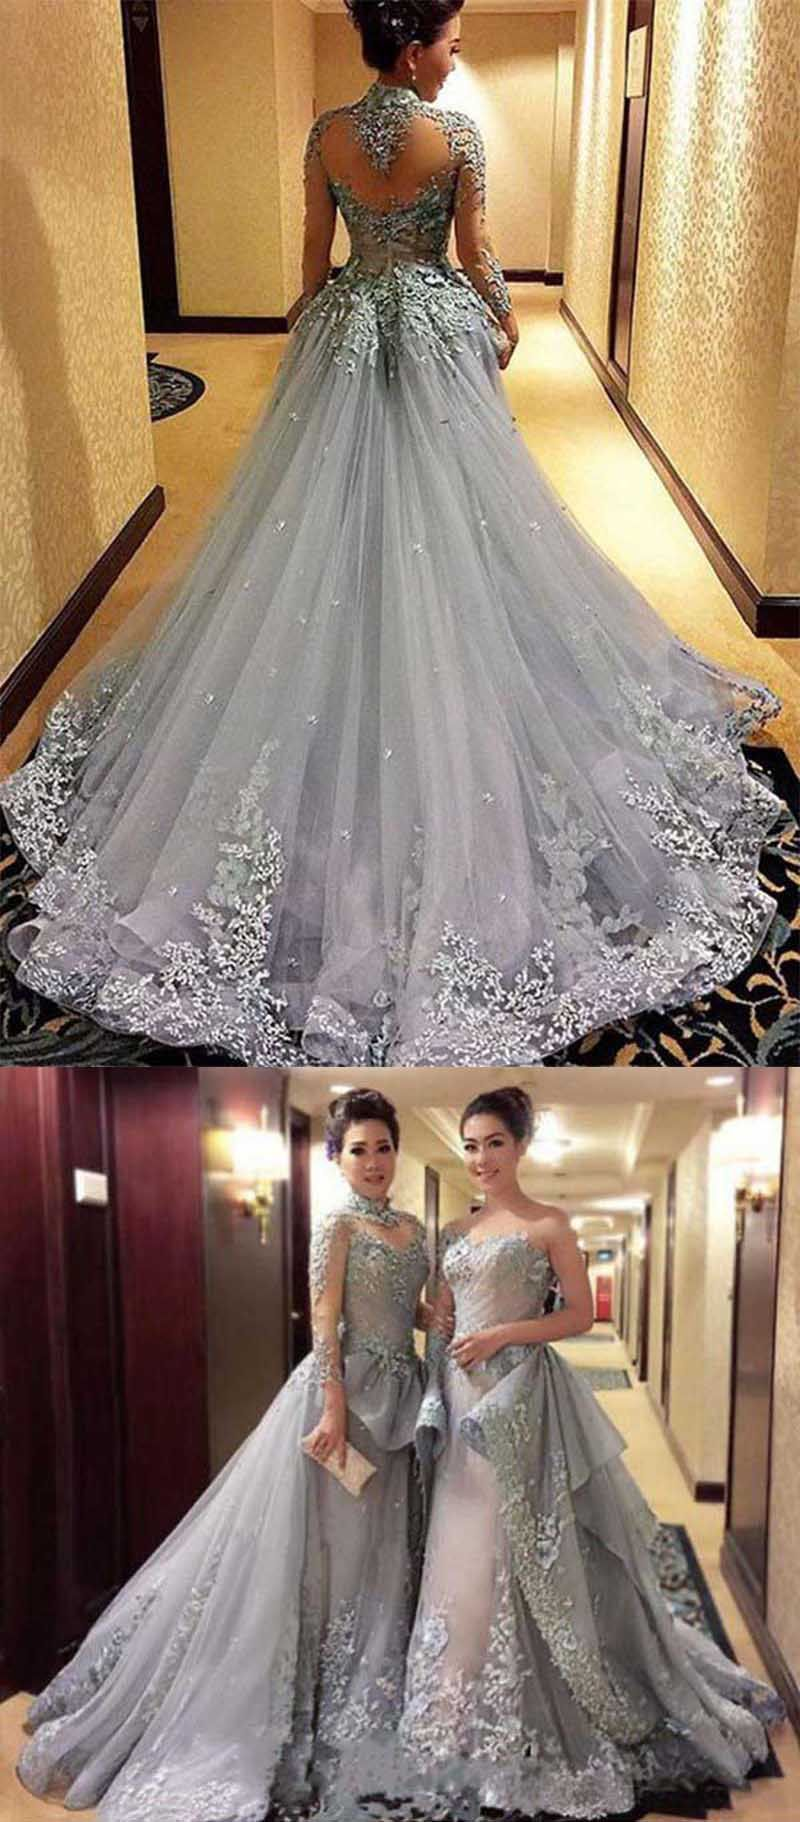 Where Can I Buy A Dress For A Wedding | Wedding dress tulle, Long ...